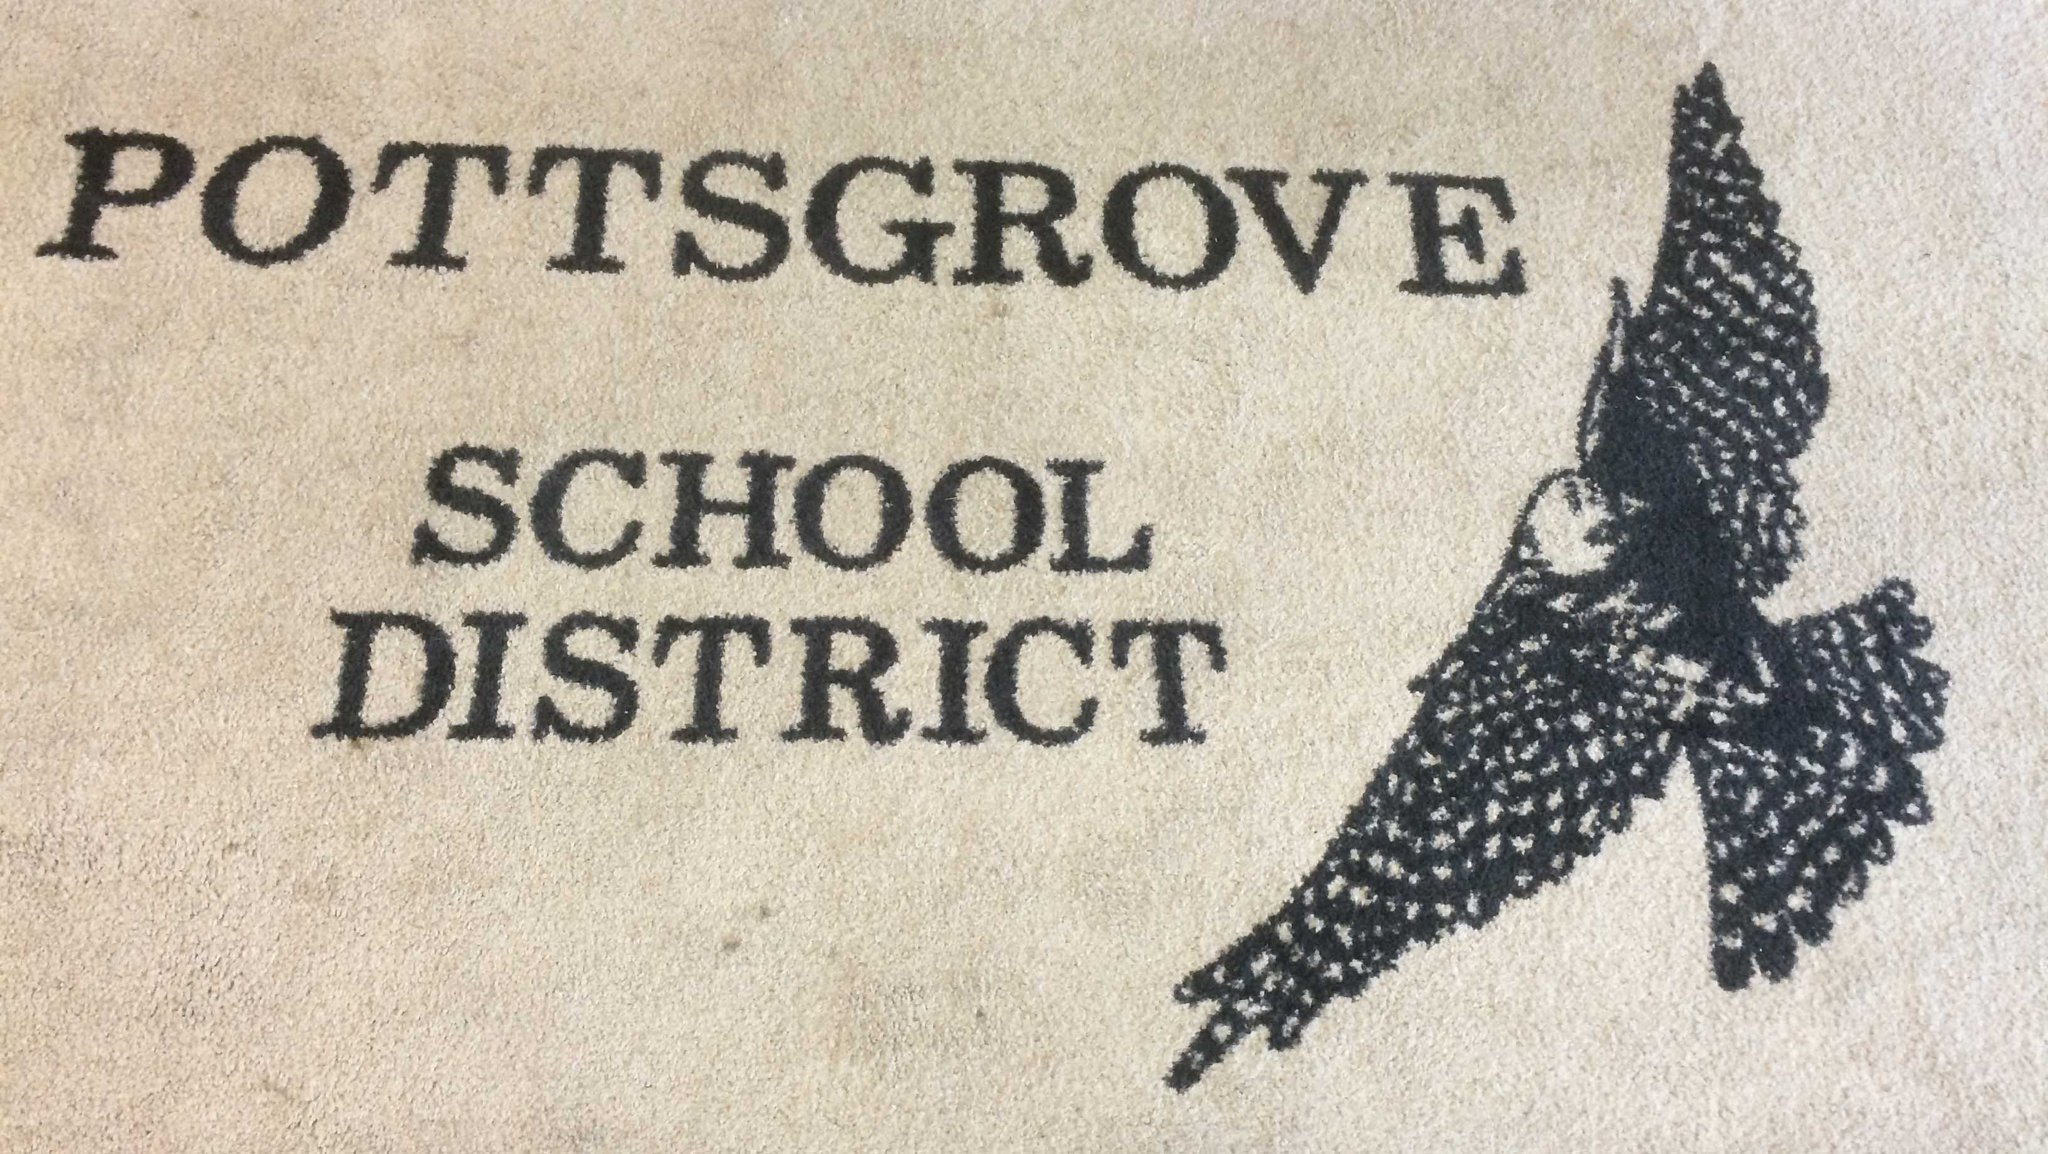 Headed over to West Pottsgrove Elementary for @pgsdfalcons school board meeting, kindergarten & $200K in tax losses on agenda. Follow along. https://t.co/K5xiW2cDoy